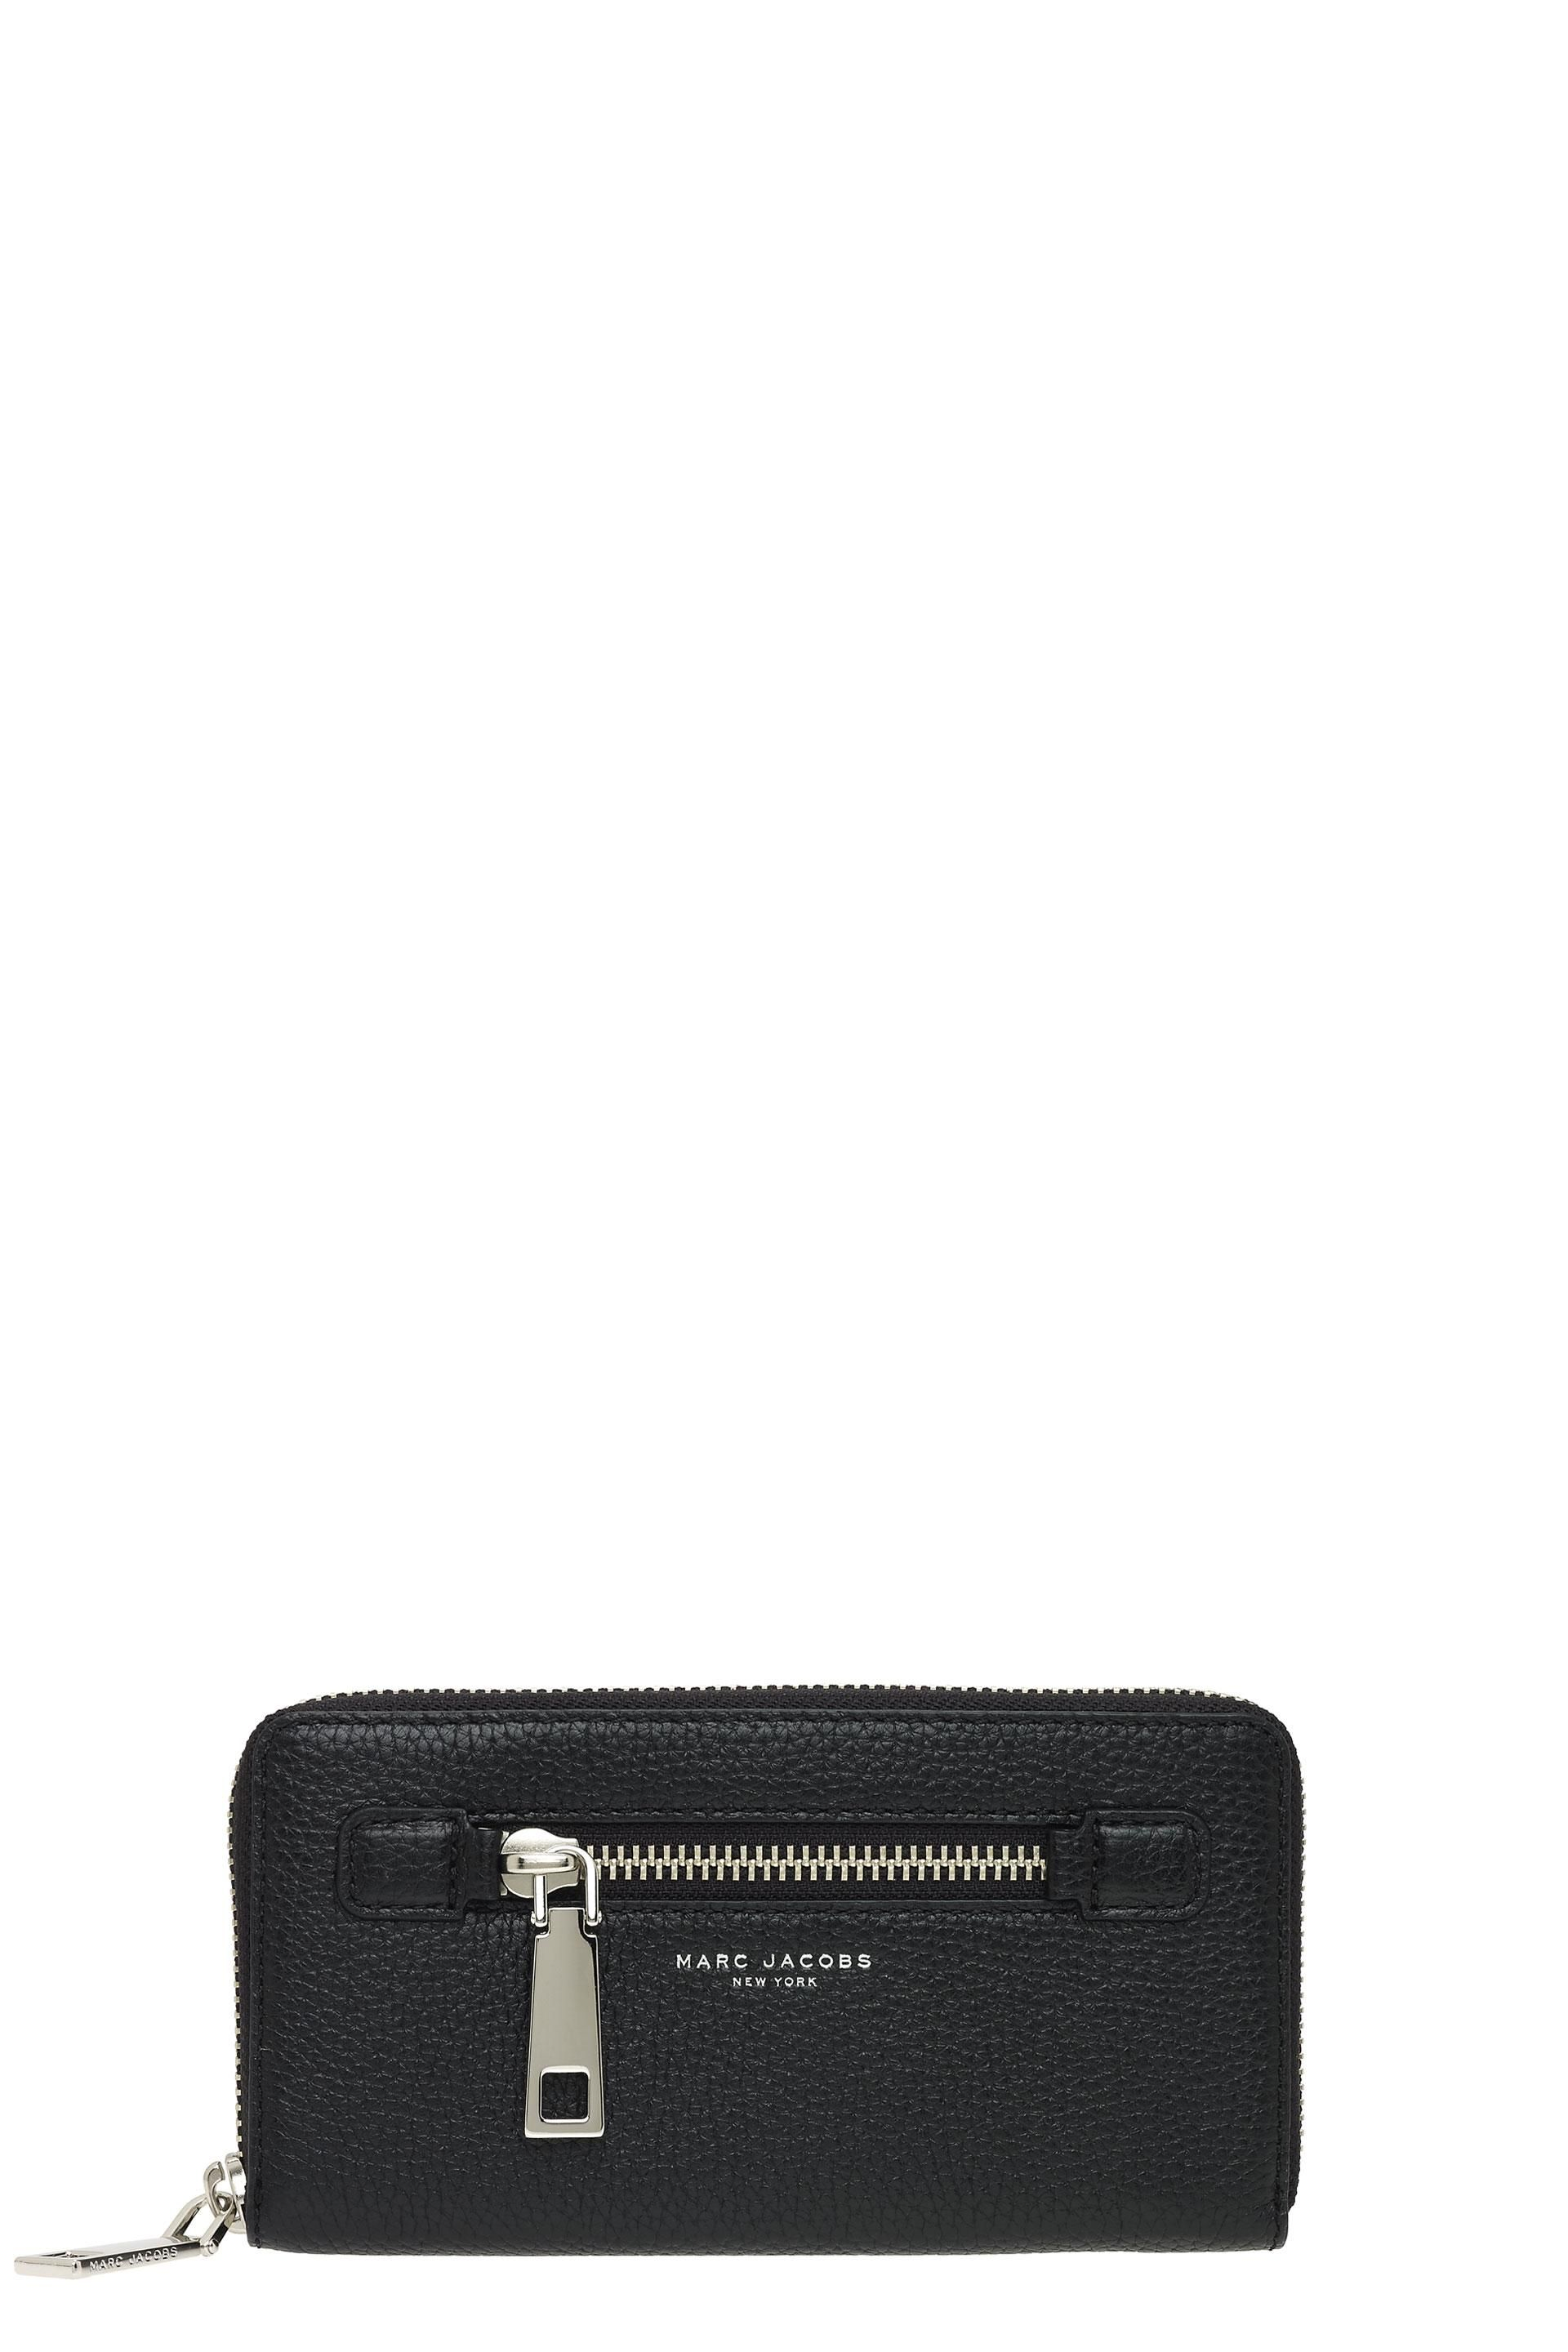 MARC JACOBS Gotham City Continental Wallet. #marcjacobs #bags #leather #wallet #accessory